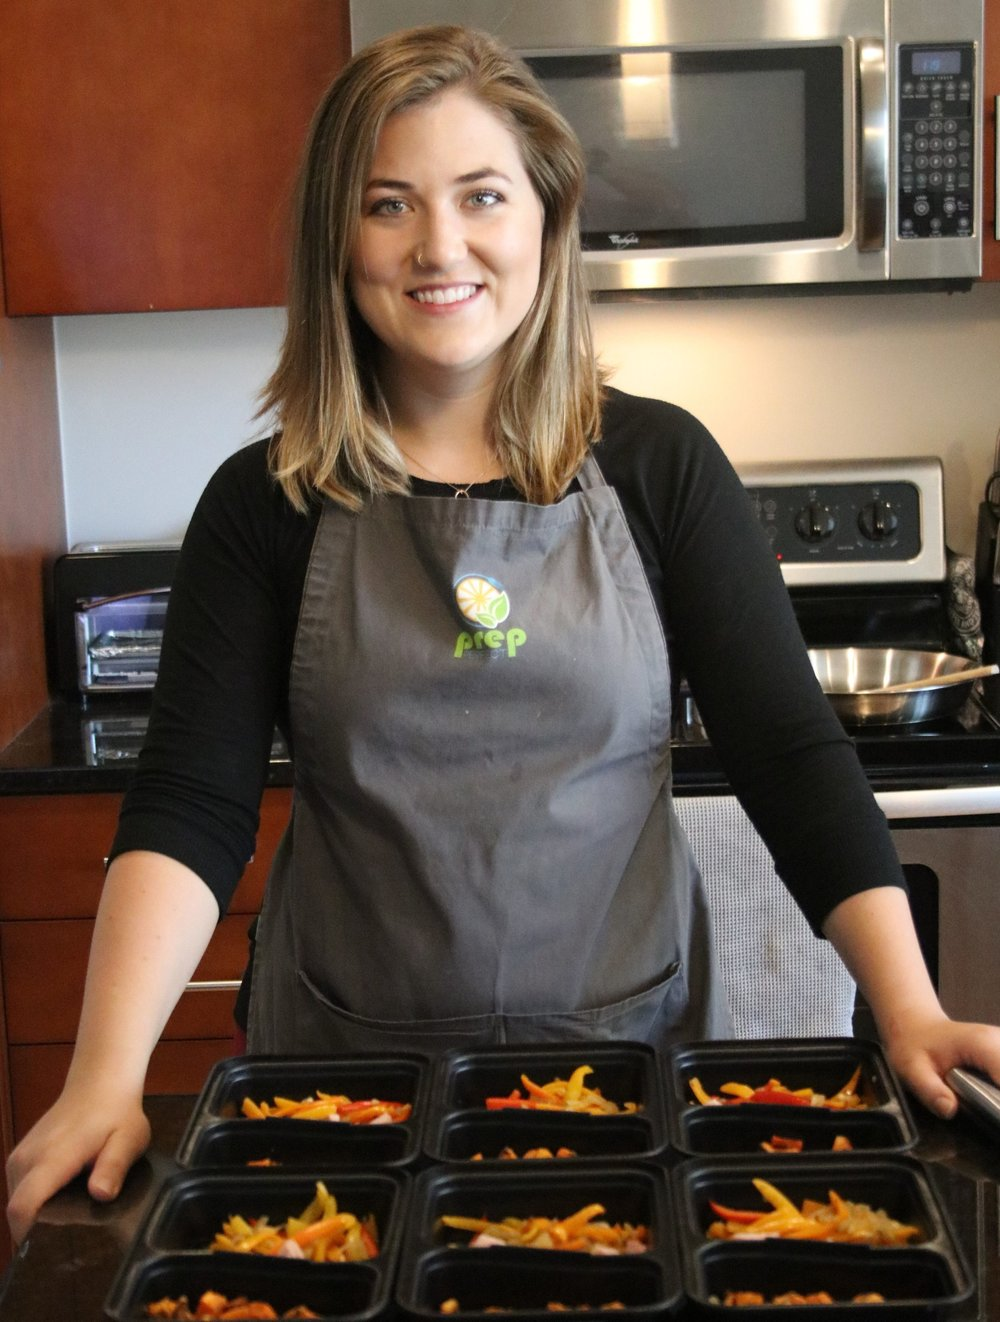 Hi! I'm Misha - and I'm so glad you stopped by to see what I can do for you! I have spent the last four years perfecting my cooking and meal prepping methods. I want to share my knowledge with you!